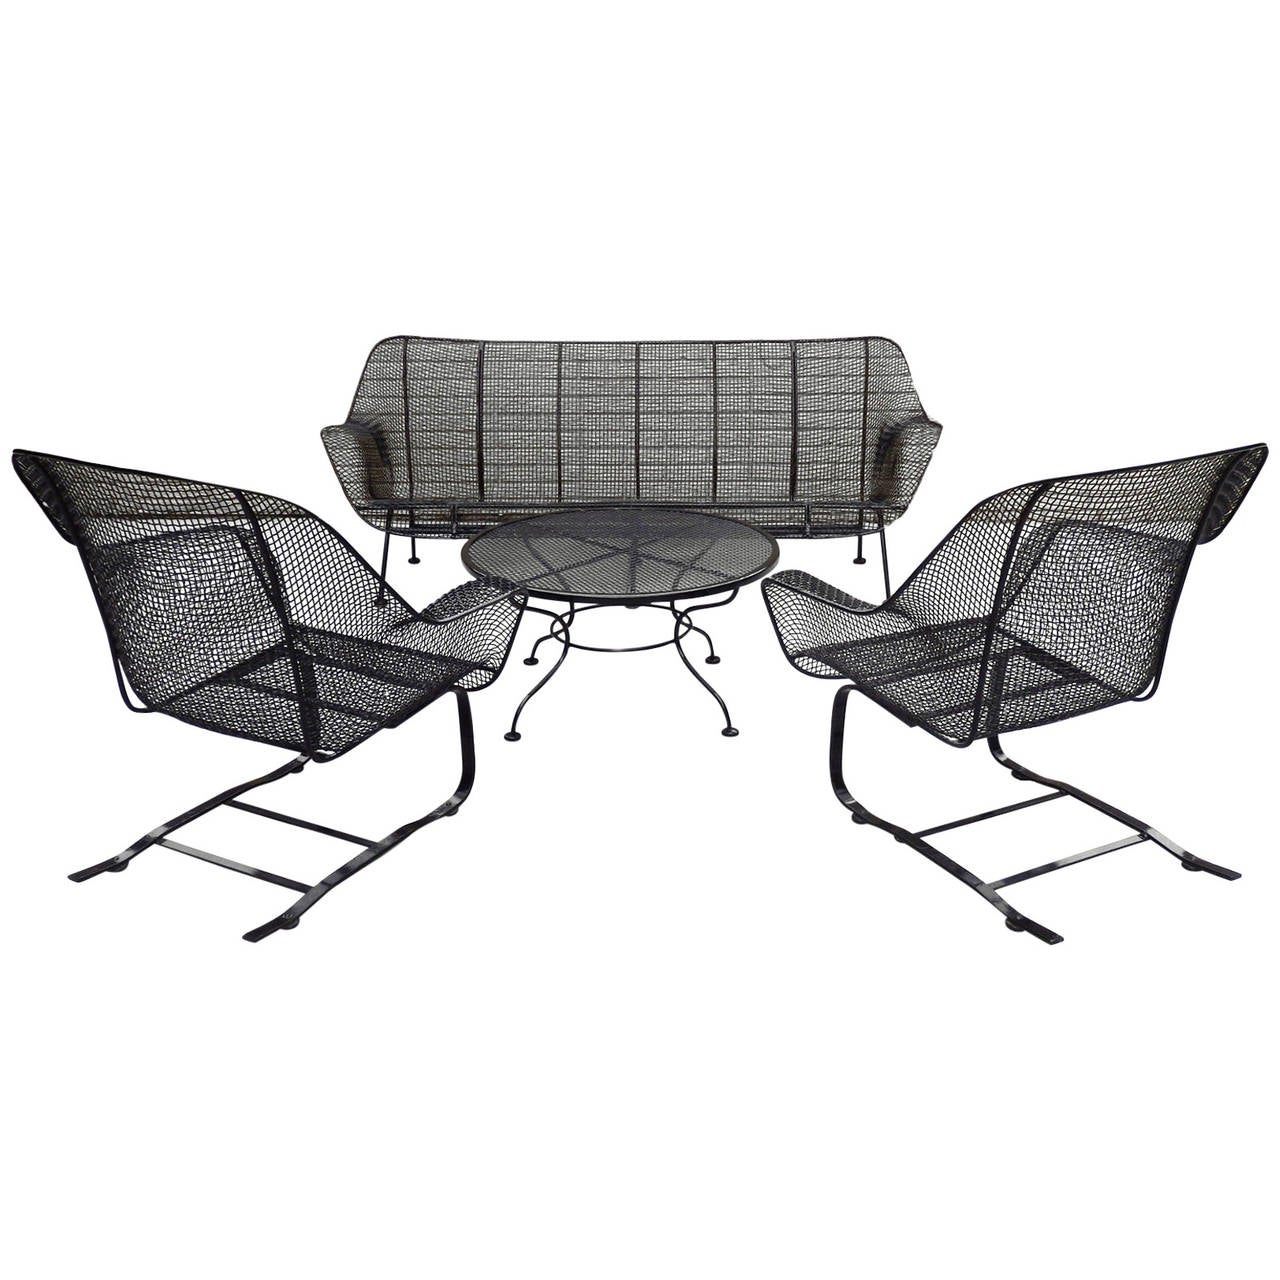 Four-Piece Suite of Woodard Wrought Iron Outdoor Garden Furniture 1